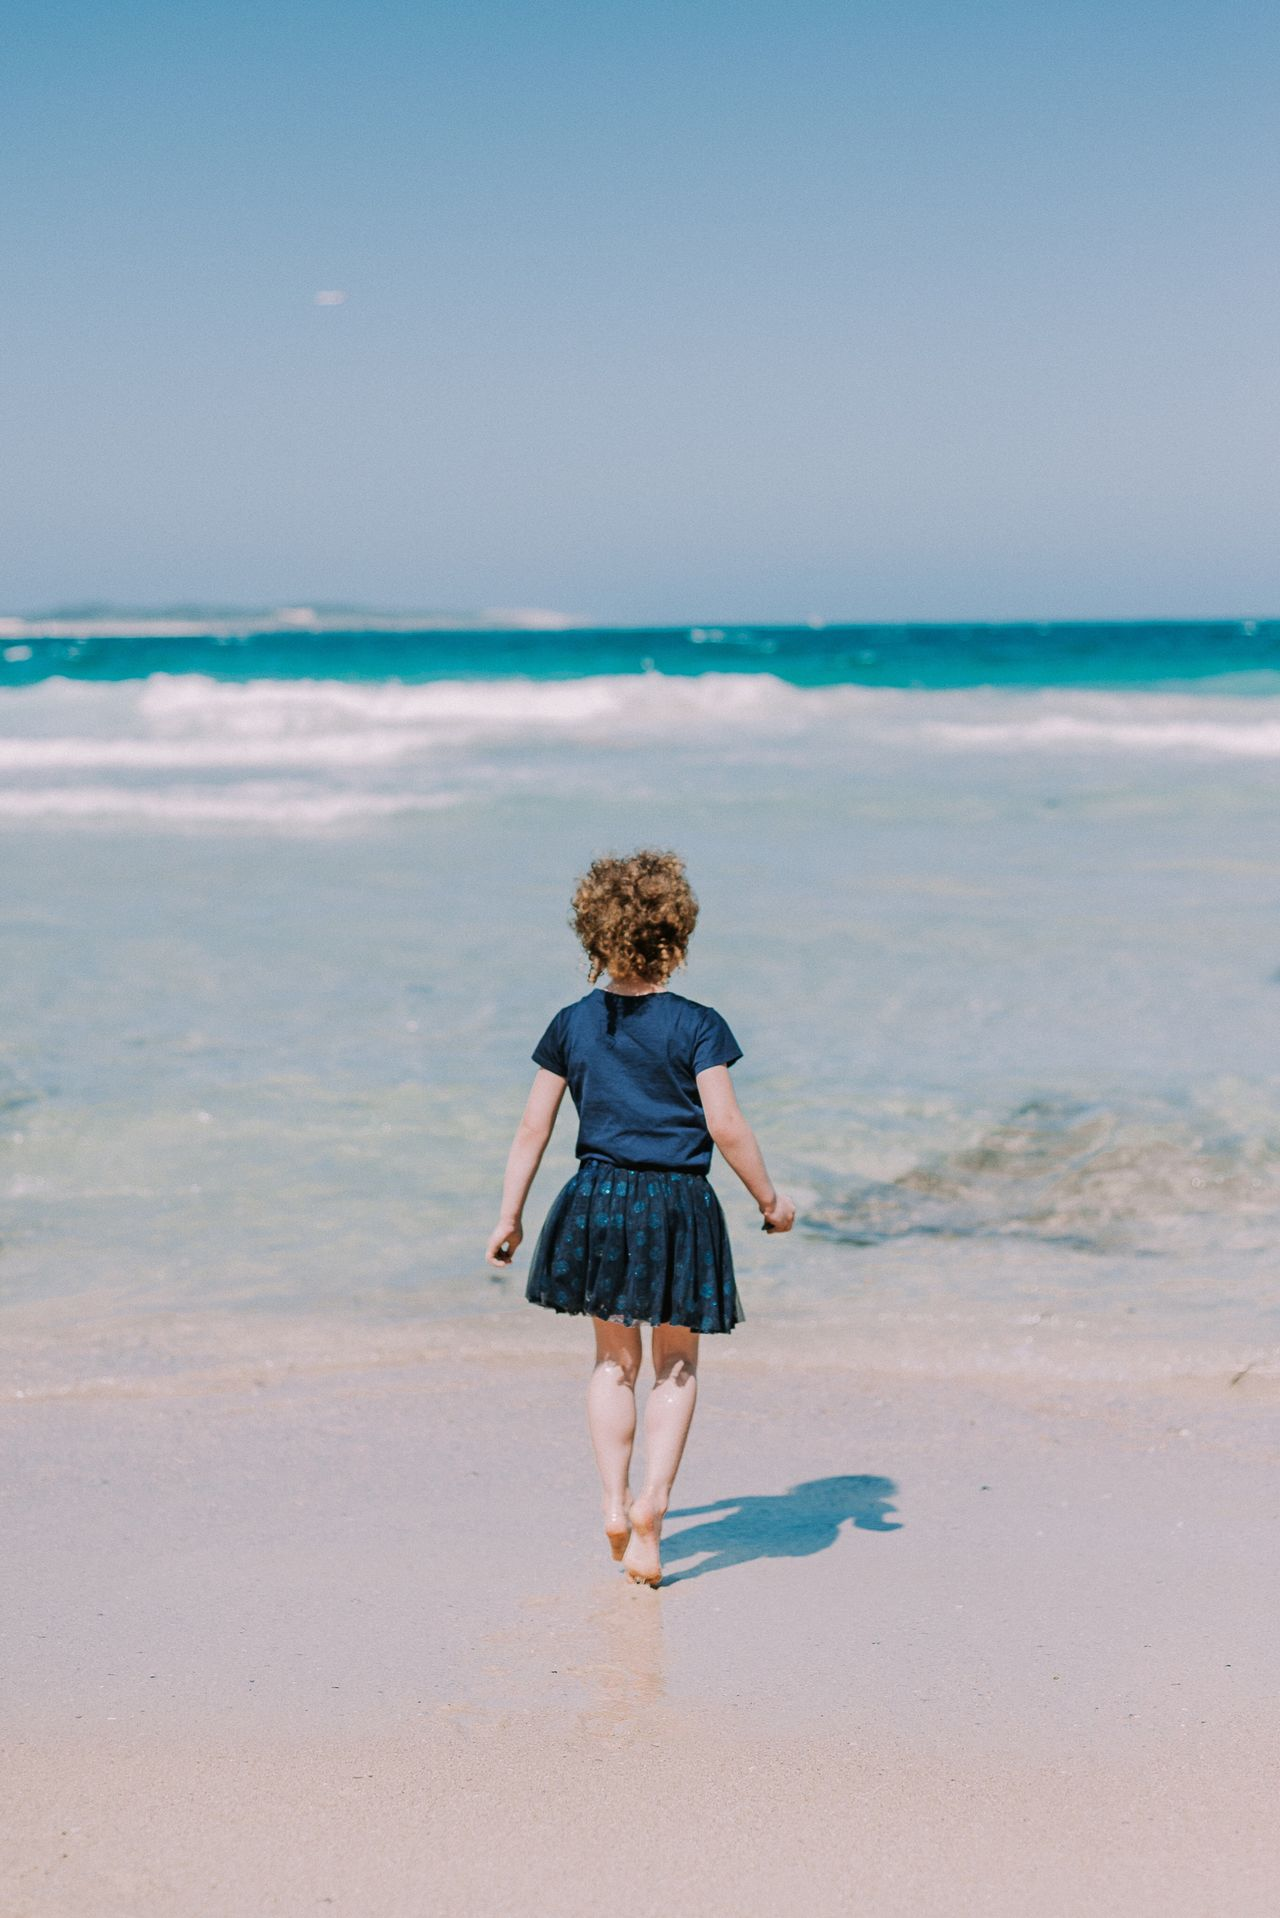 Beach day with my girl Enjoy The New Normal Sea Full Length Beach One Person Rear View Sand Childhood Leisure Activity Real People Lifestyles Outdoors Beauty In Nature Australia EyeEmBestPics EyeEm Best Edits Travel Photography